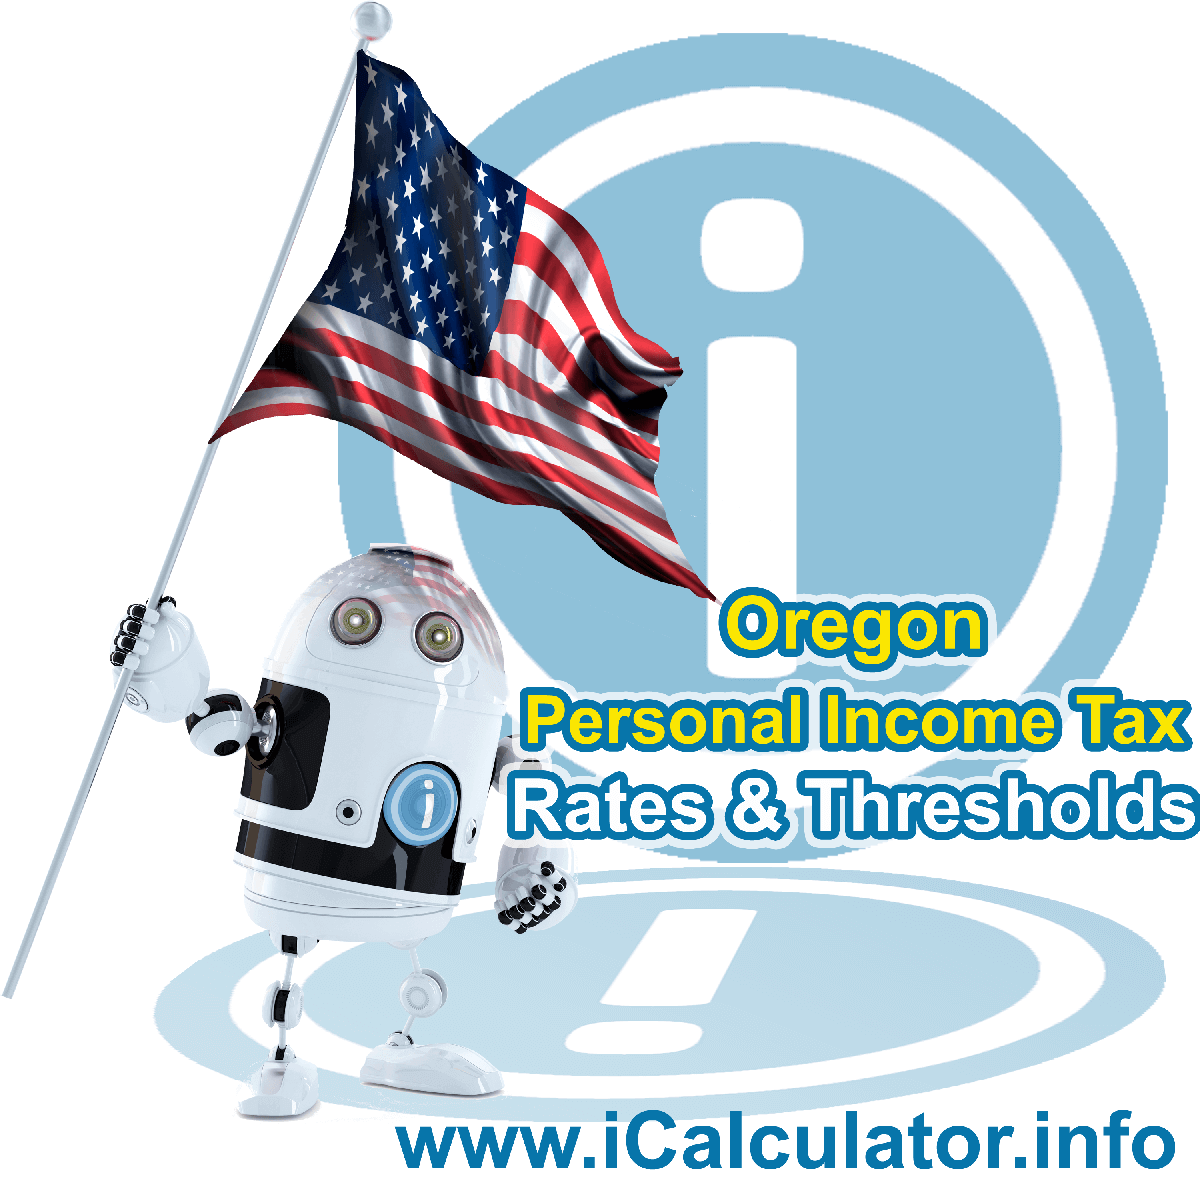 Oregon State Tax Tables 2015. This image displays details of the Oregon State Tax Tables for the 2015 tax return year which is provided in support of the 2015 US Tax Calculator